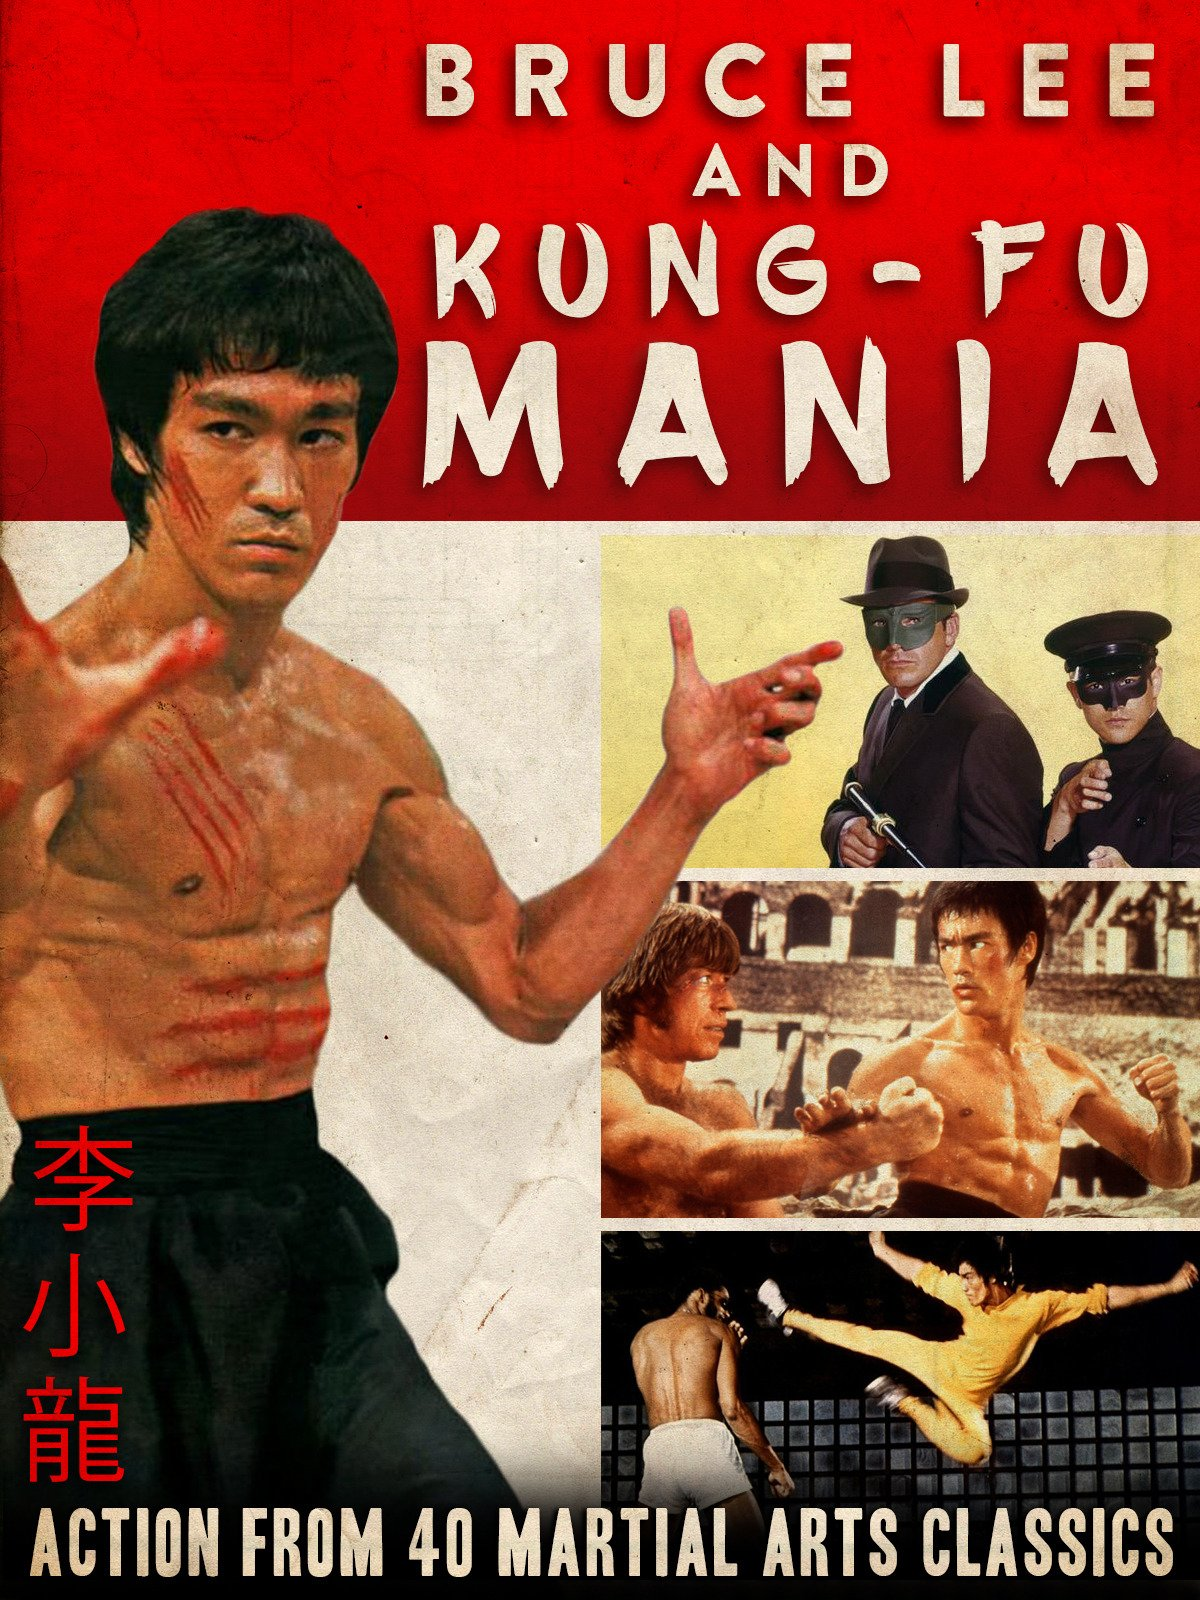 Bruce Lee and Kung-Fu Mania - Action From 40 Martial Arts Classics